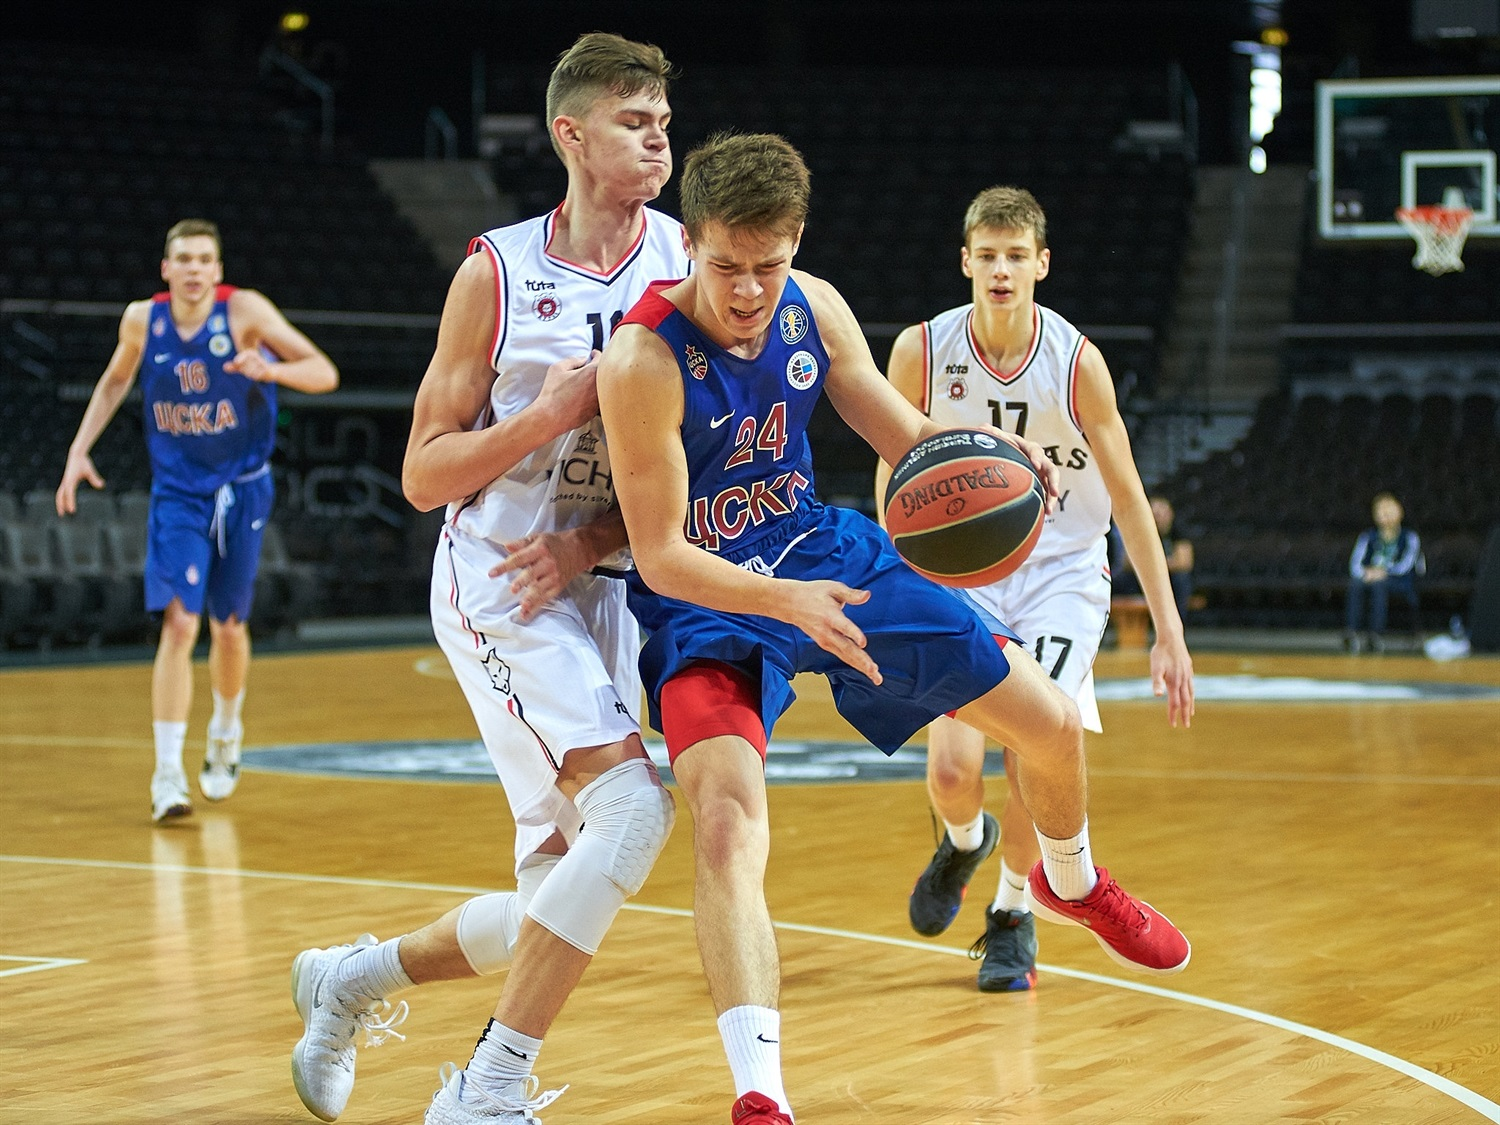 Denis Kovalev - U18 CSKA Moscow (photo Zalgiris) - JT18